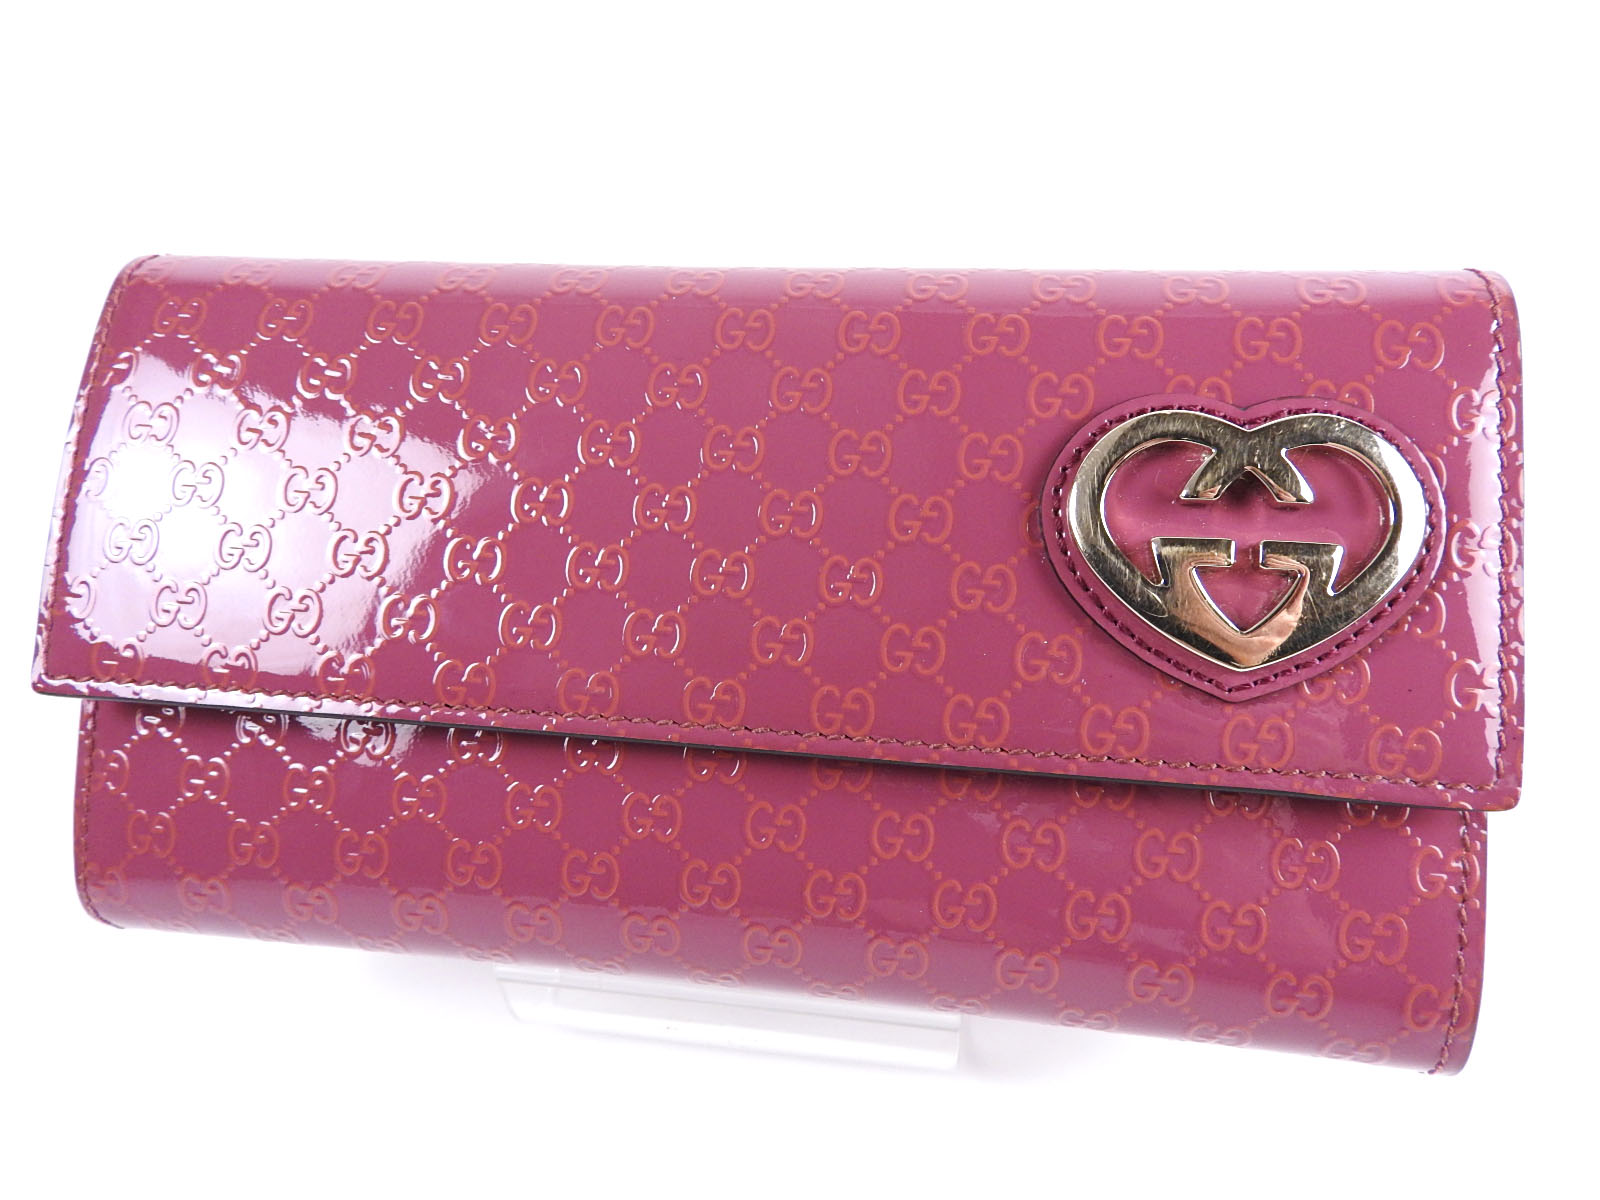 39fc45cb9bd2 GUCCI Lovely GG MICRO GUCCISSIMA Bifold Long Wallet Enamel Pink 251861  A-5216